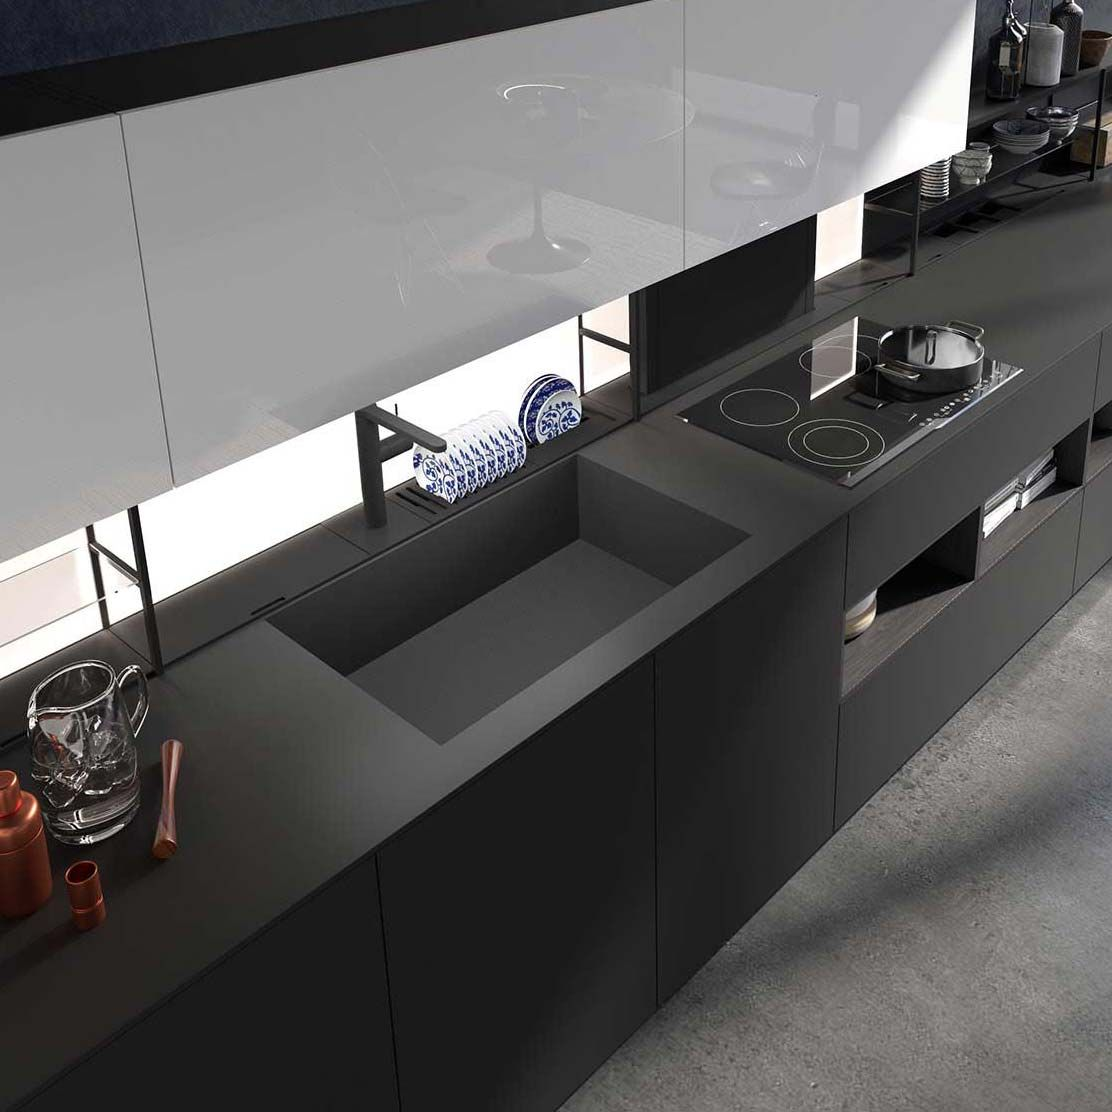 Cuisine ytrac de lapeyre kitchens and interiors for Cuisine lapeyre